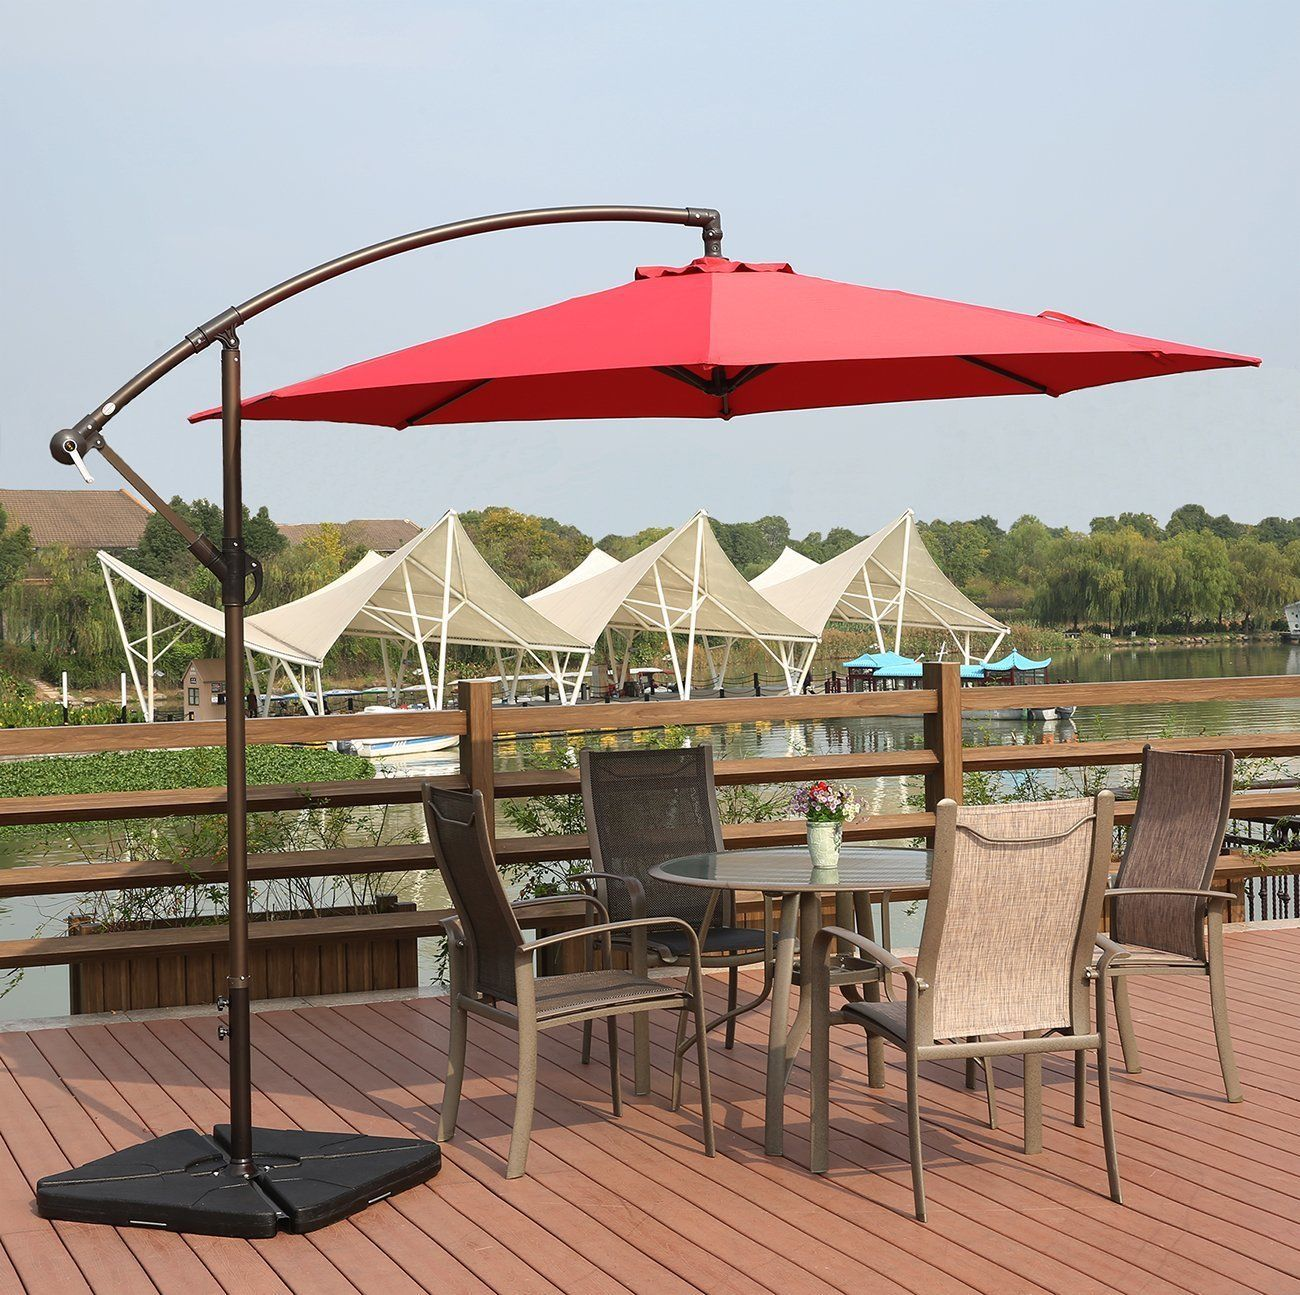 new 10 ft hanging umbrella hanging with base ! - uncle wiener's Base for 10 Ft Umbrella